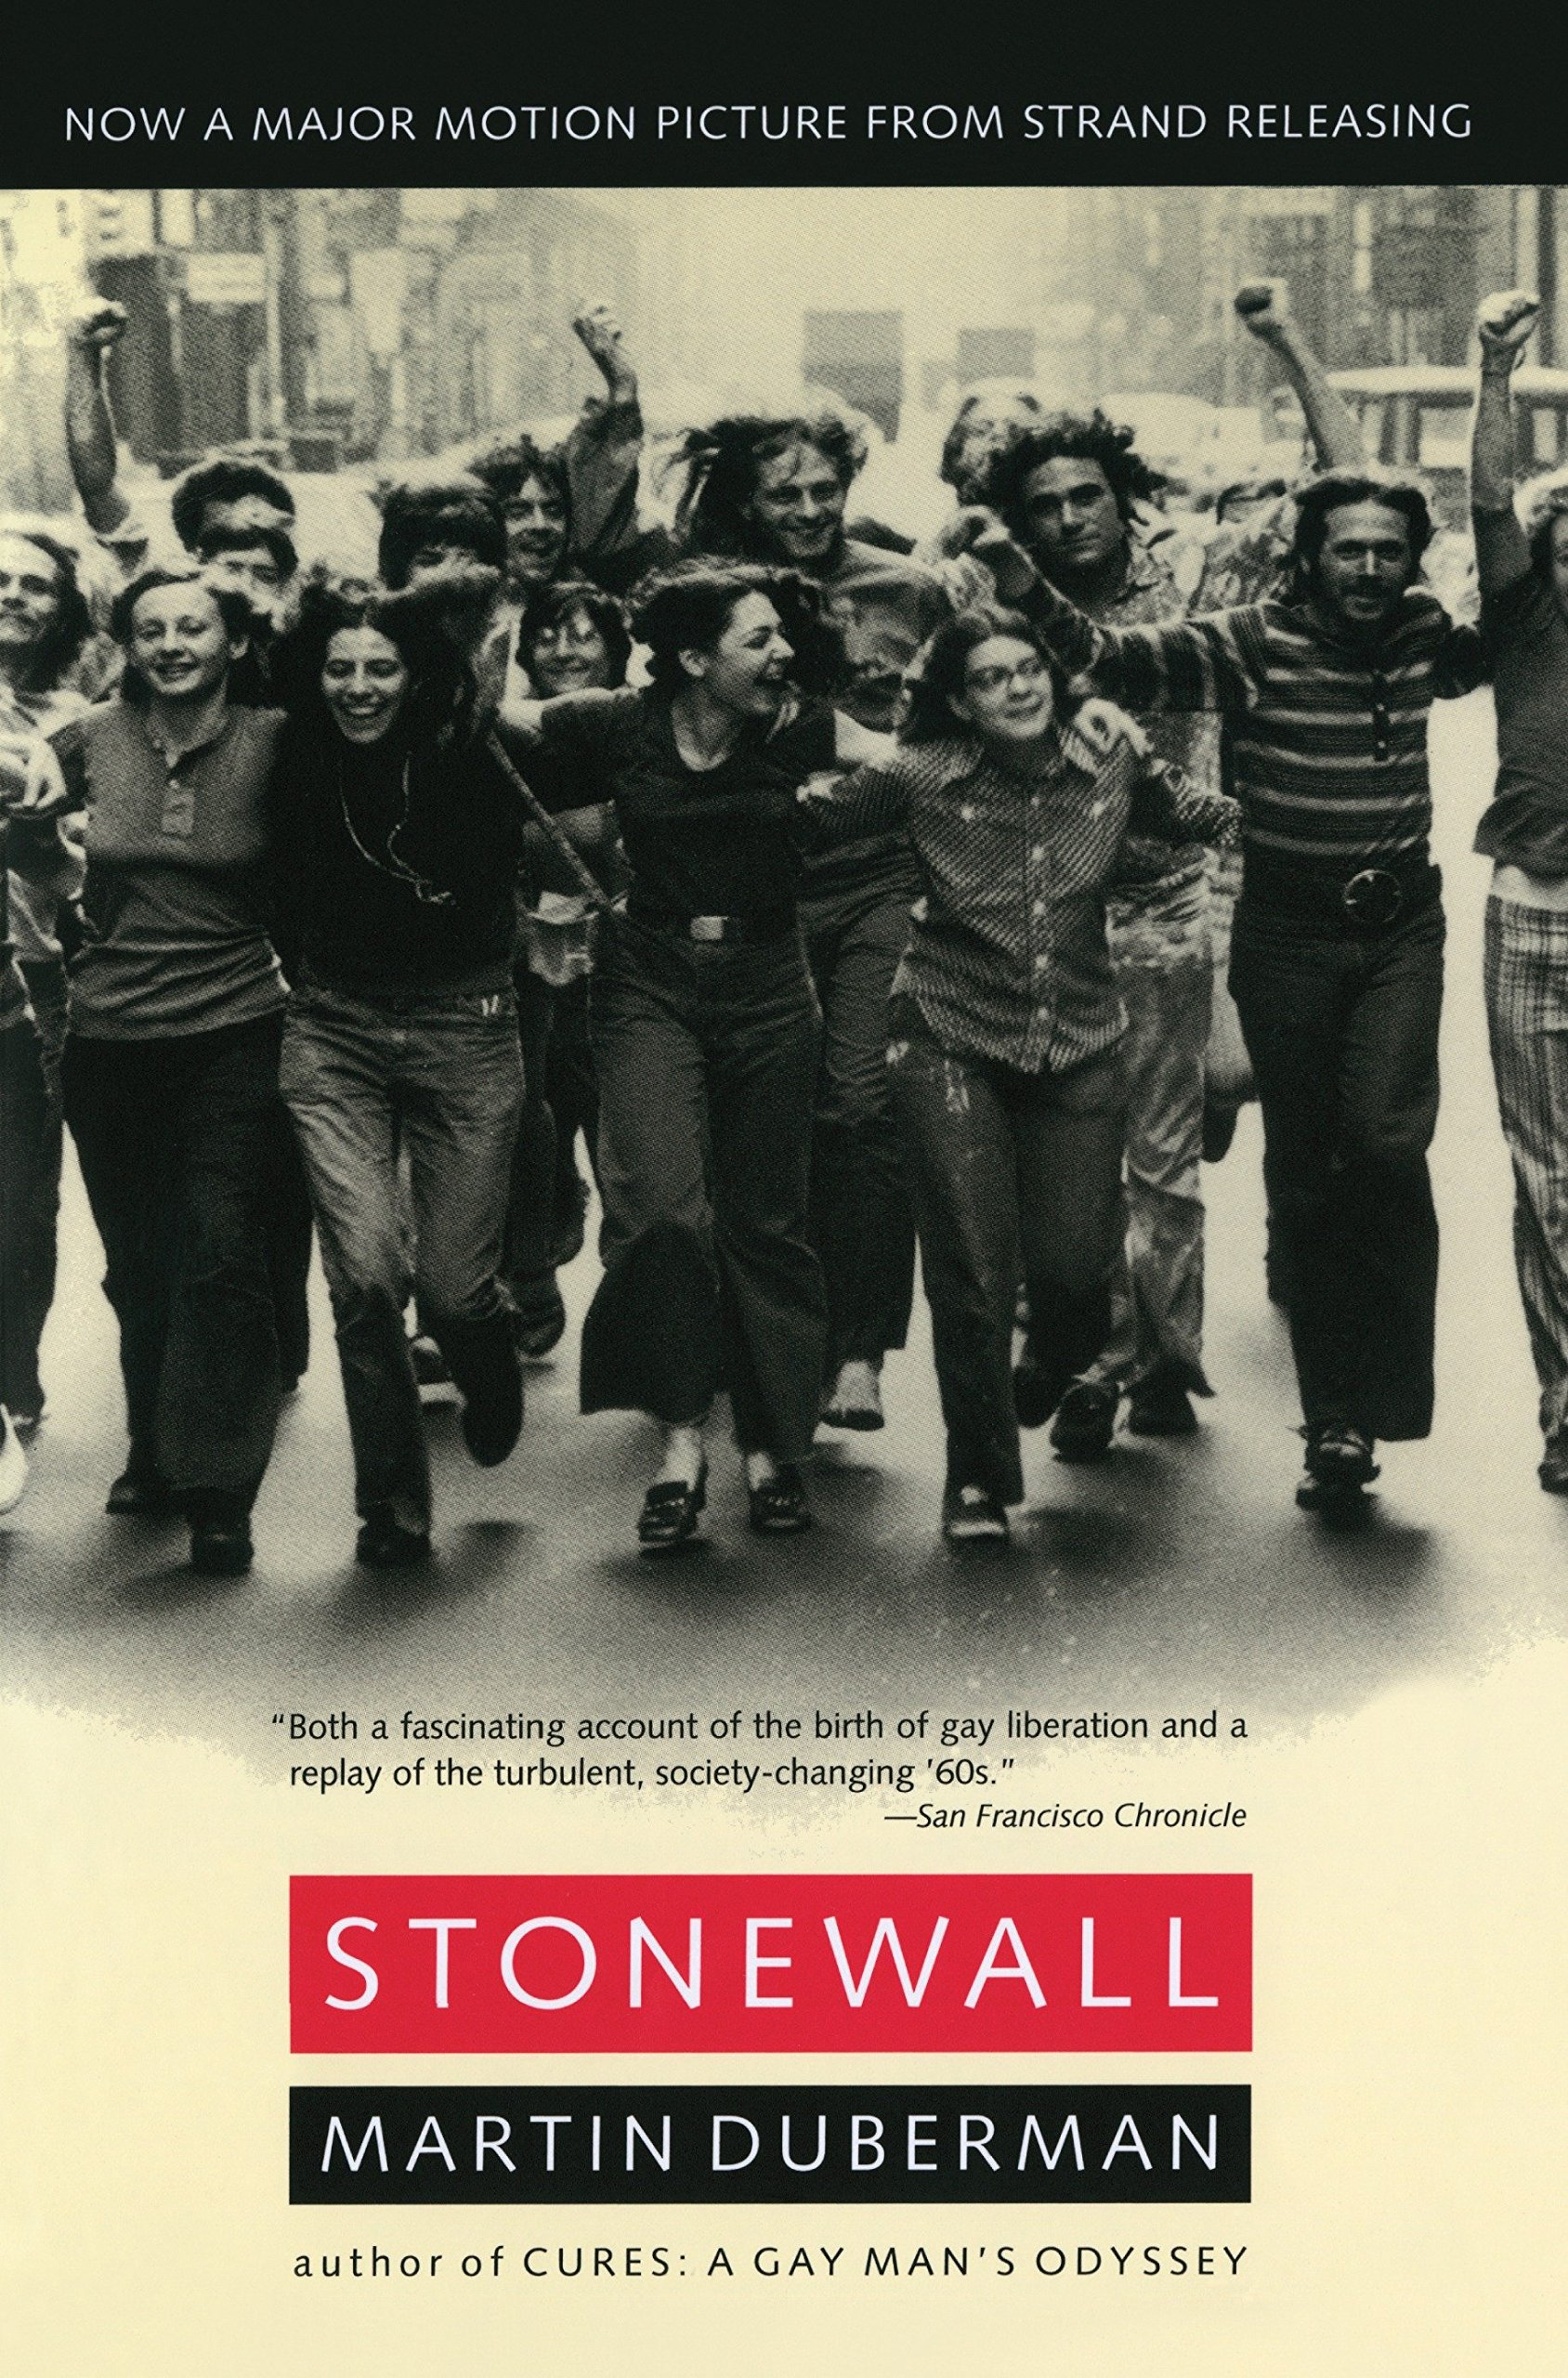 Duberman Stonewall cover art